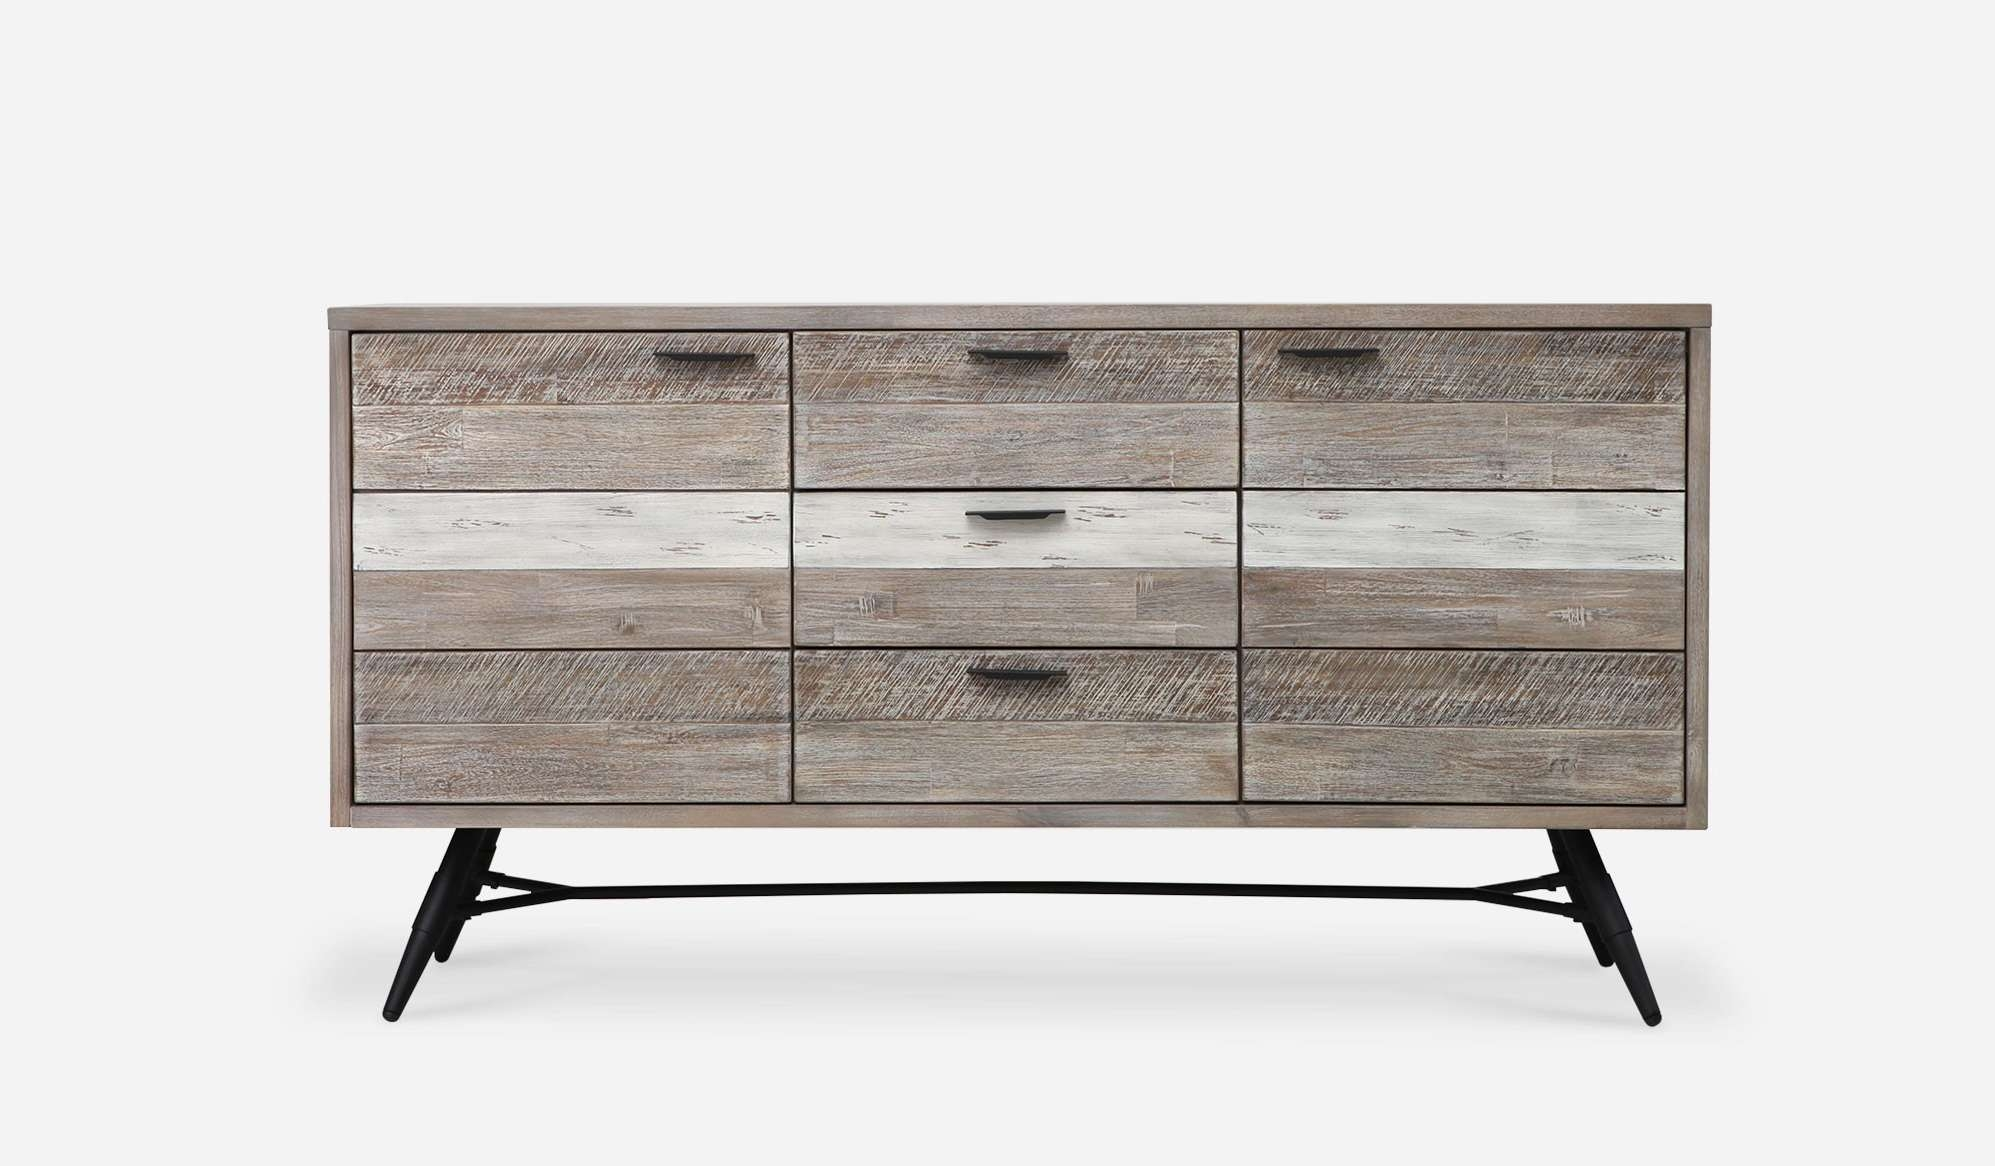 Sideboards That Will Work Great For Any Home! | Home & Decor Singapore In Singapore Sideboards And Buffets (View 4 of 20)